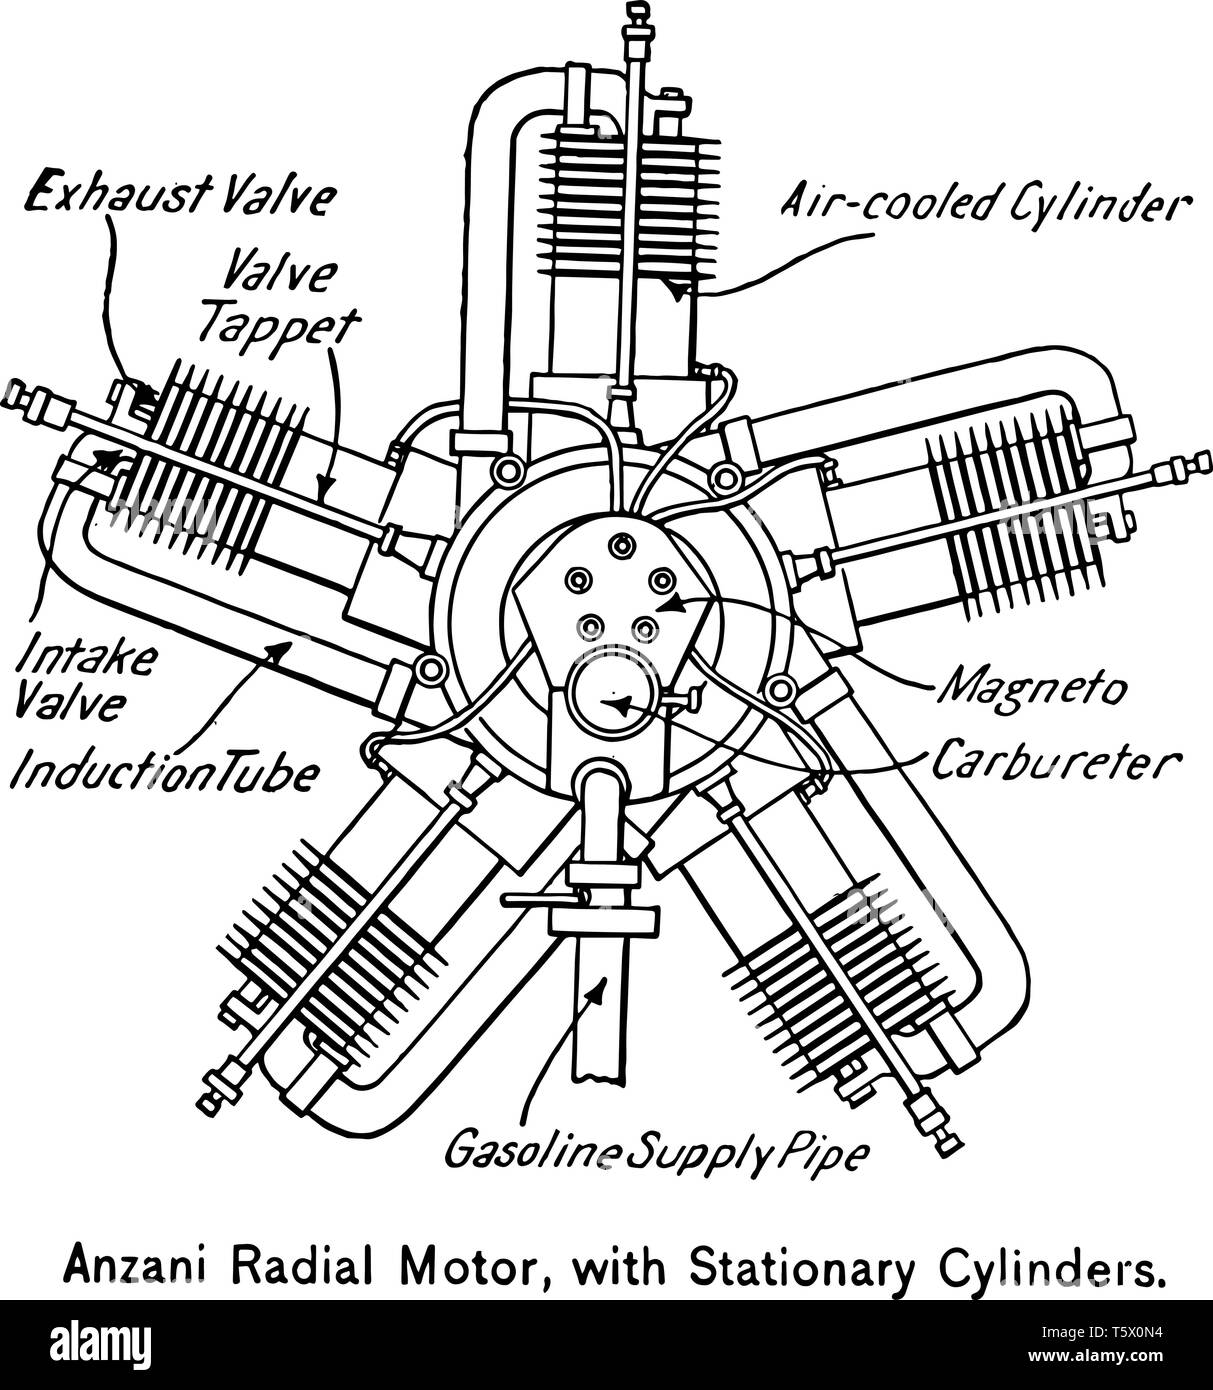 Radial Engine Diagram - Wiring Diagram Update on